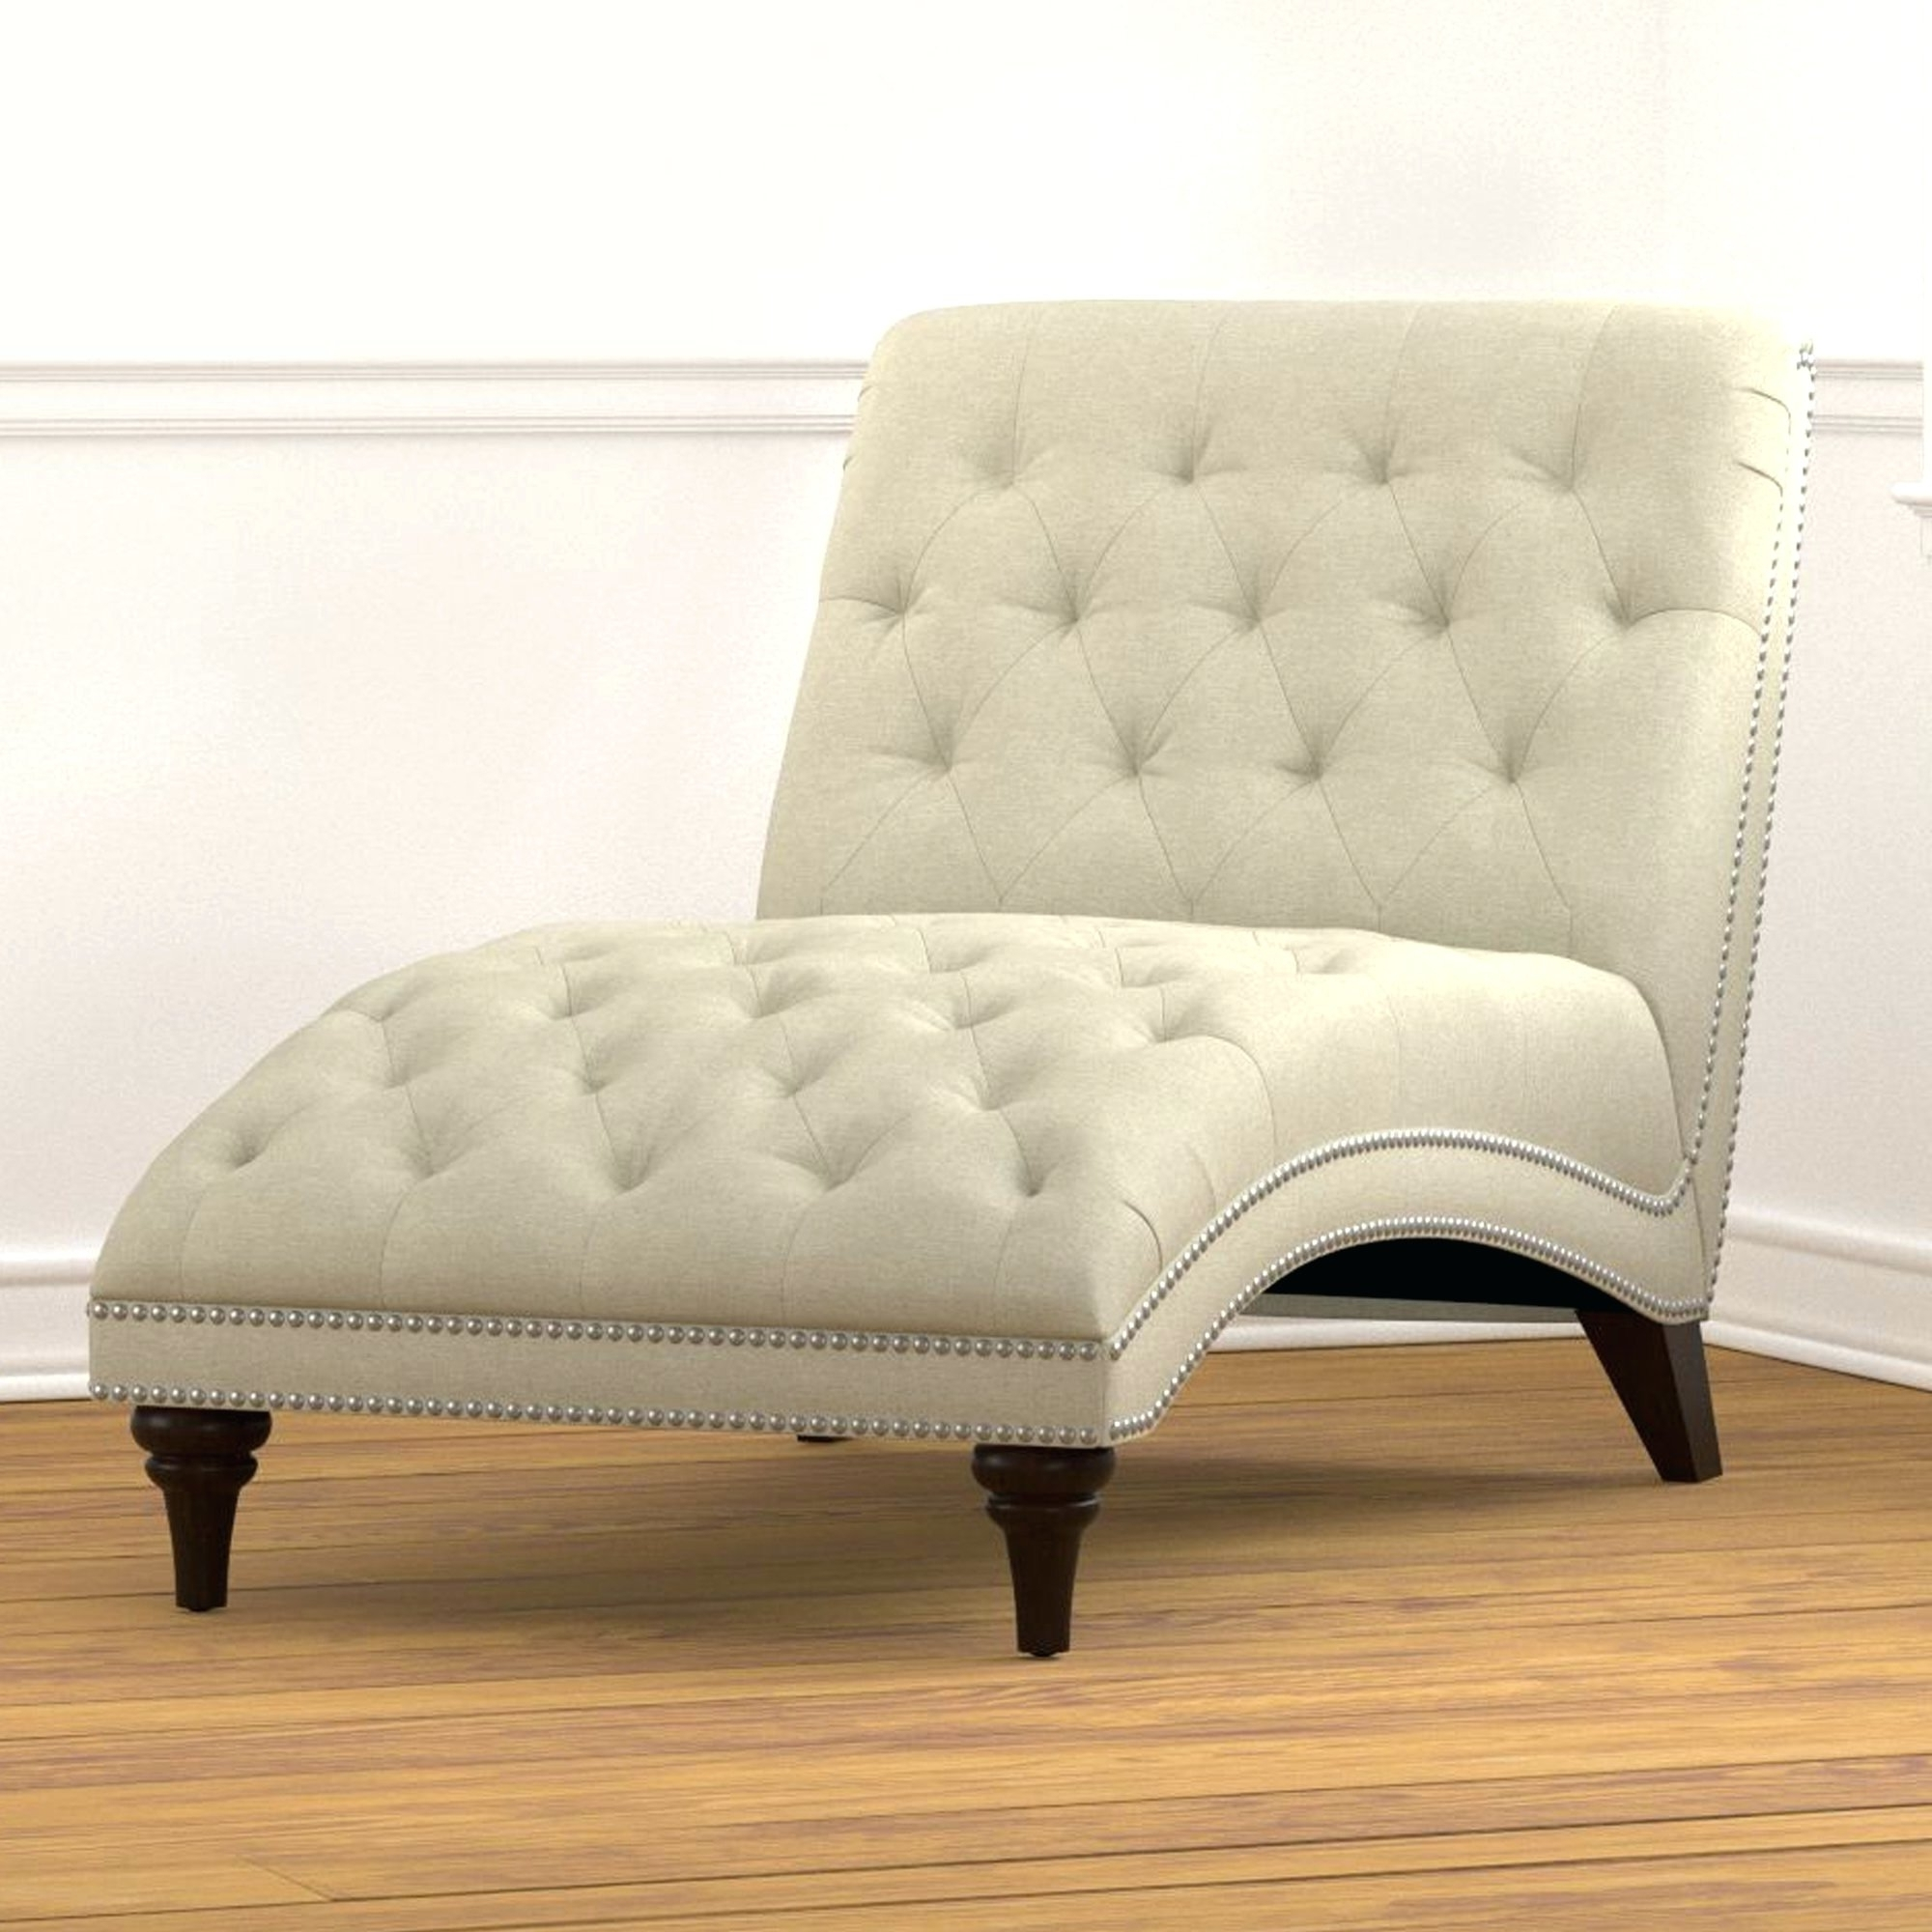 Favorite Alessia Chaise Lounge Tufted Chairs For Alessia Chaise Lounge Chair Tufted • Lounge Chairs Ideas (View 3 of 15)